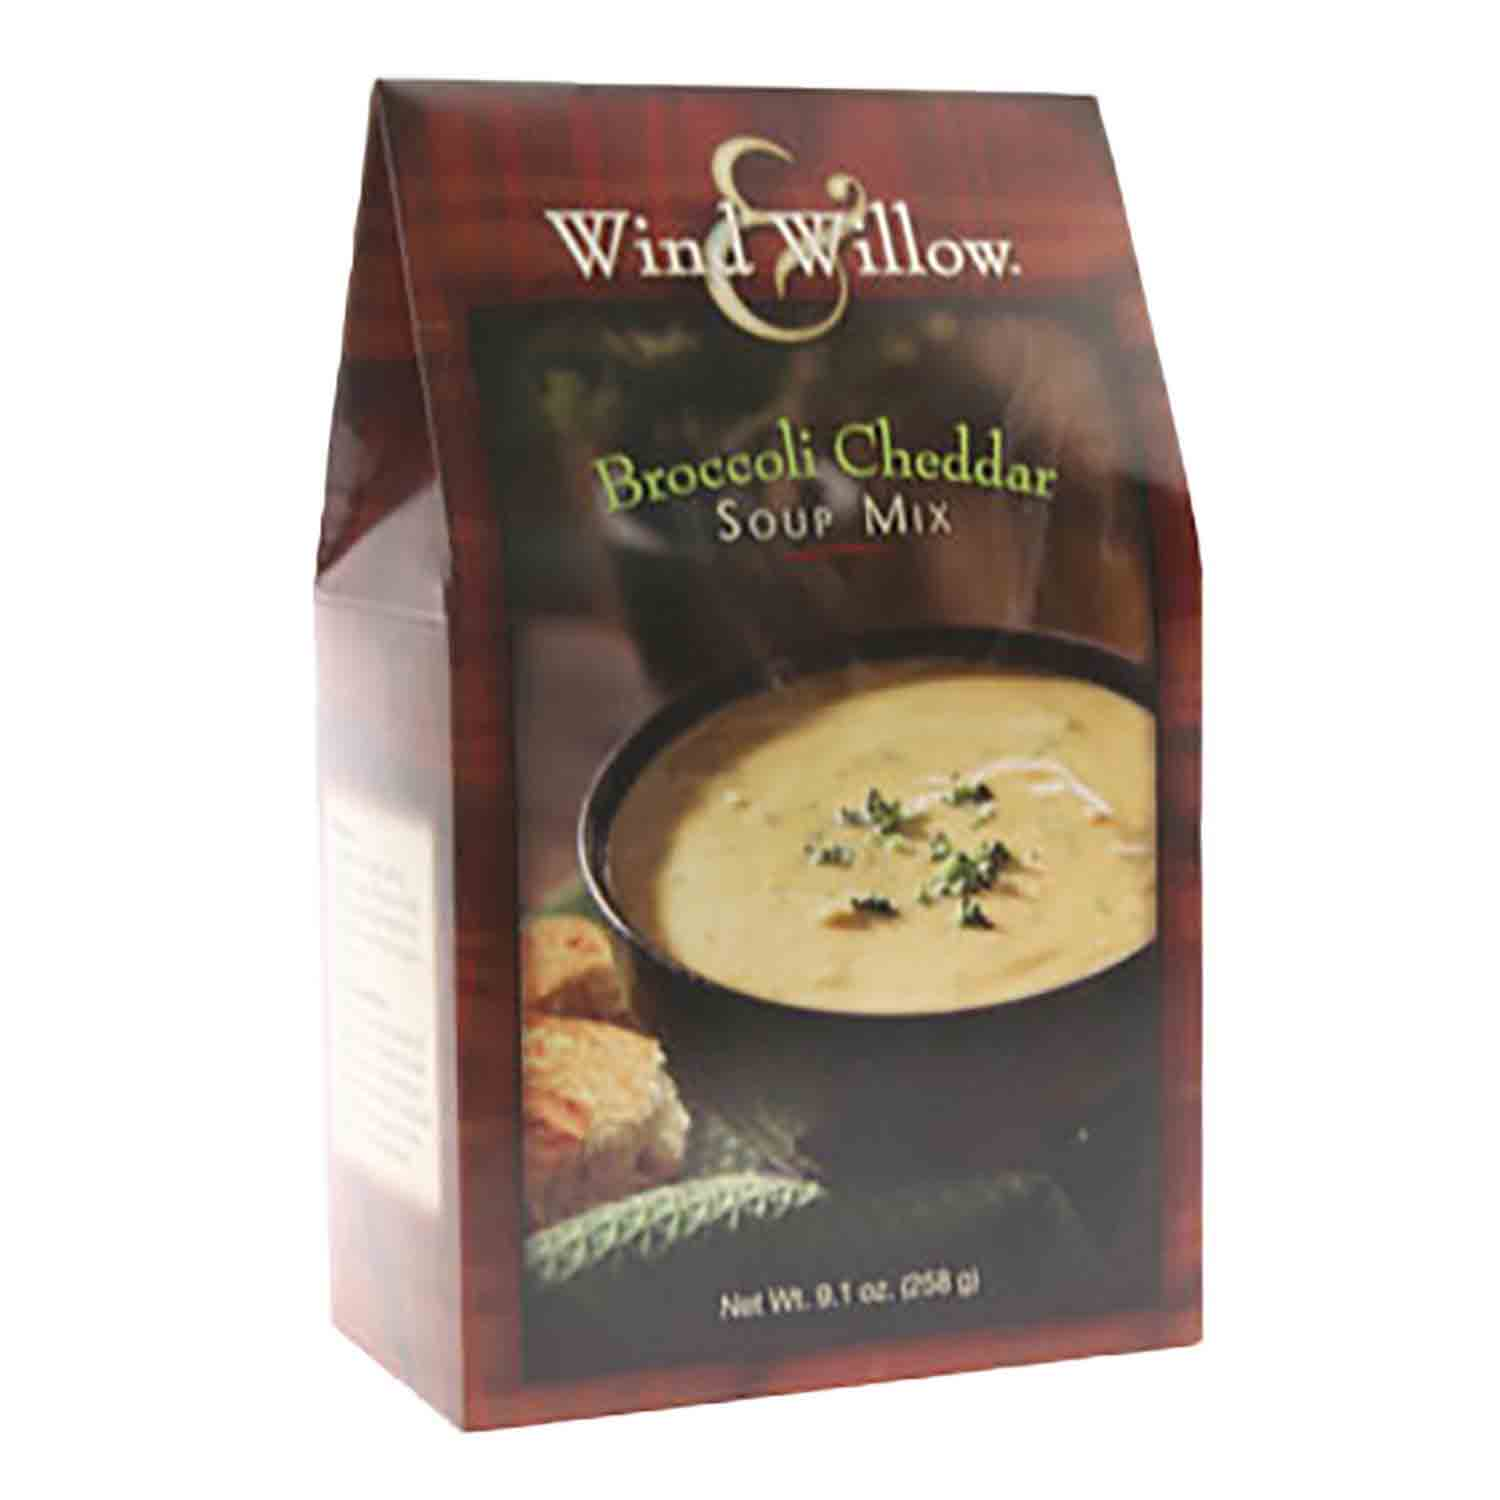 Broccoli Cheddar Wind & Willow Soup Mix